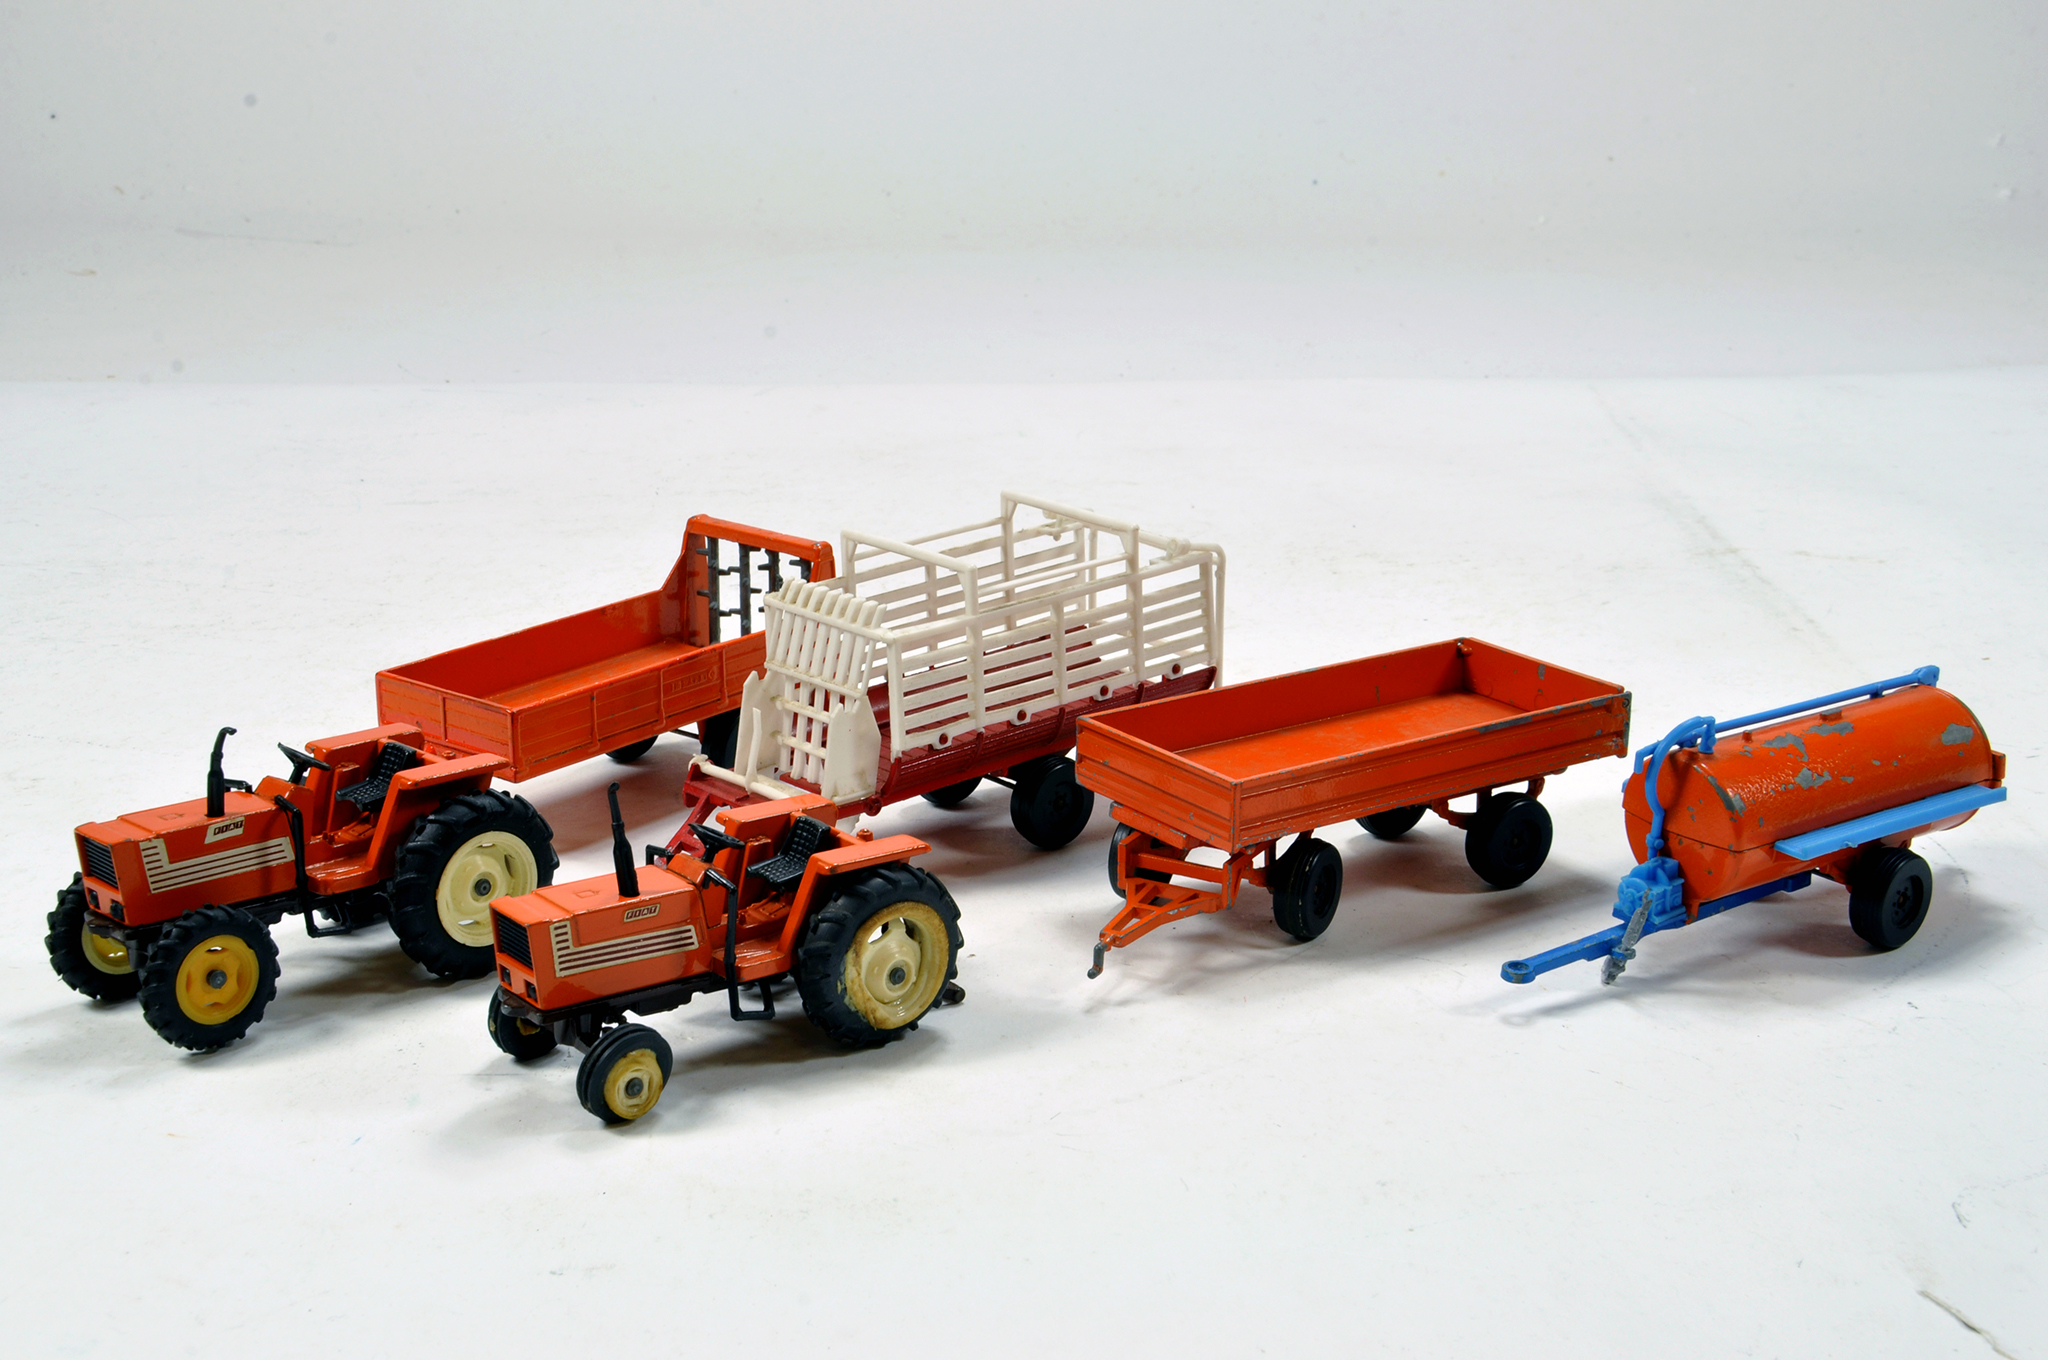 Lot 892 - A group of Forma-Toys 1/43 Farm Issues comprising Fiat Tractor and Implement combinations. Generally